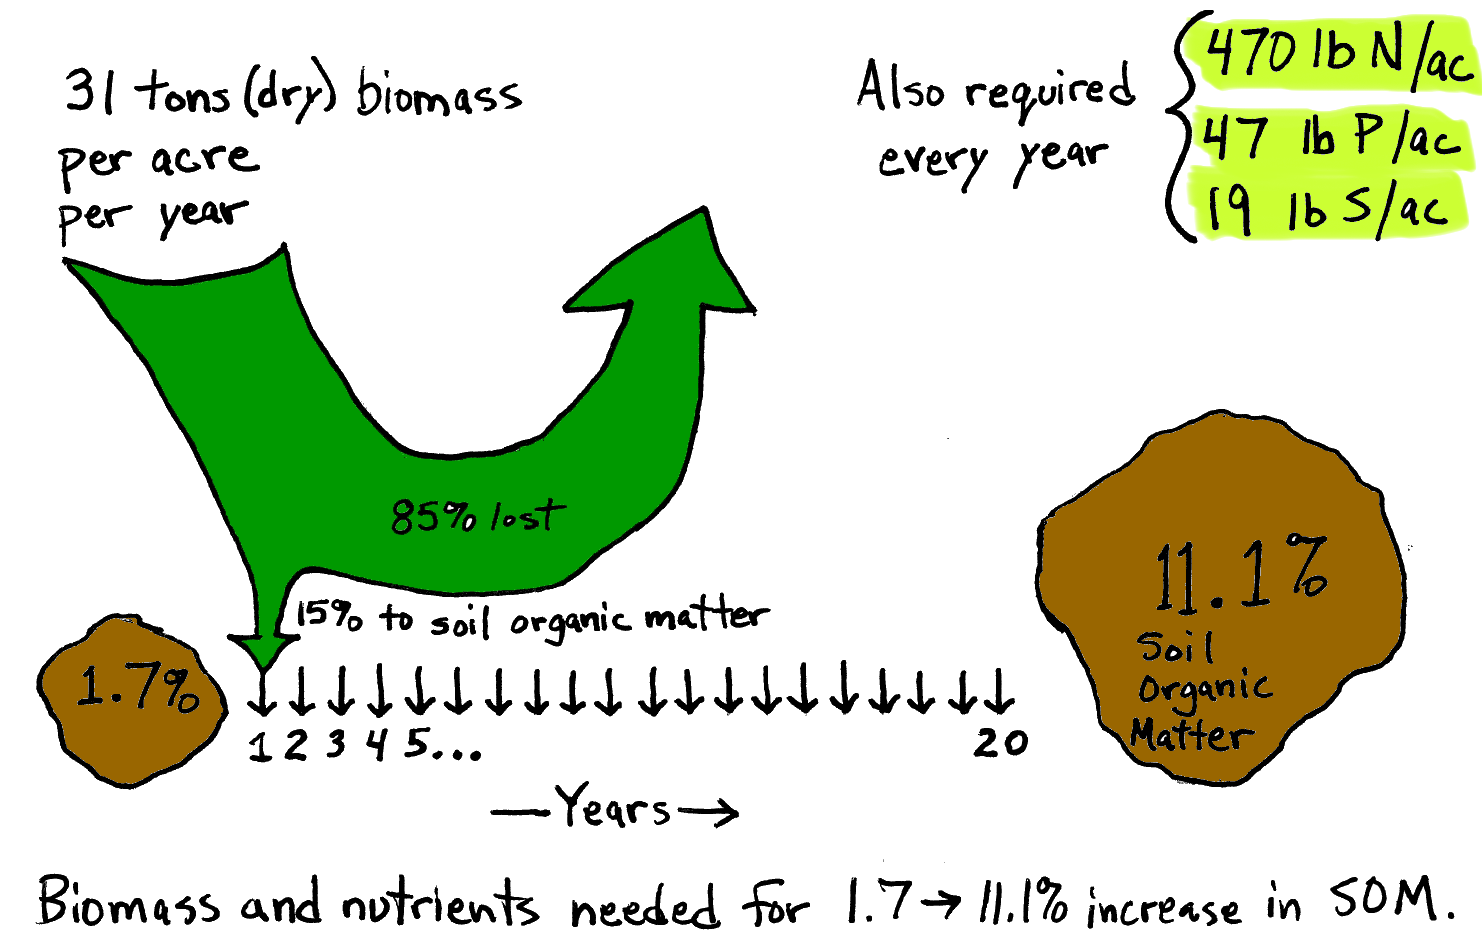 Diagram indicates that every year, 31 tons (dry) biomass per acre per year is needed in order for 15% to go to soil organic matter (while 85% is lost), every year for 20 years to go from 1.7% to 11.1% soil organic matter. Also required every year is 470 lb N/ac, 47 lb P/ac, 19 lb S/ac.